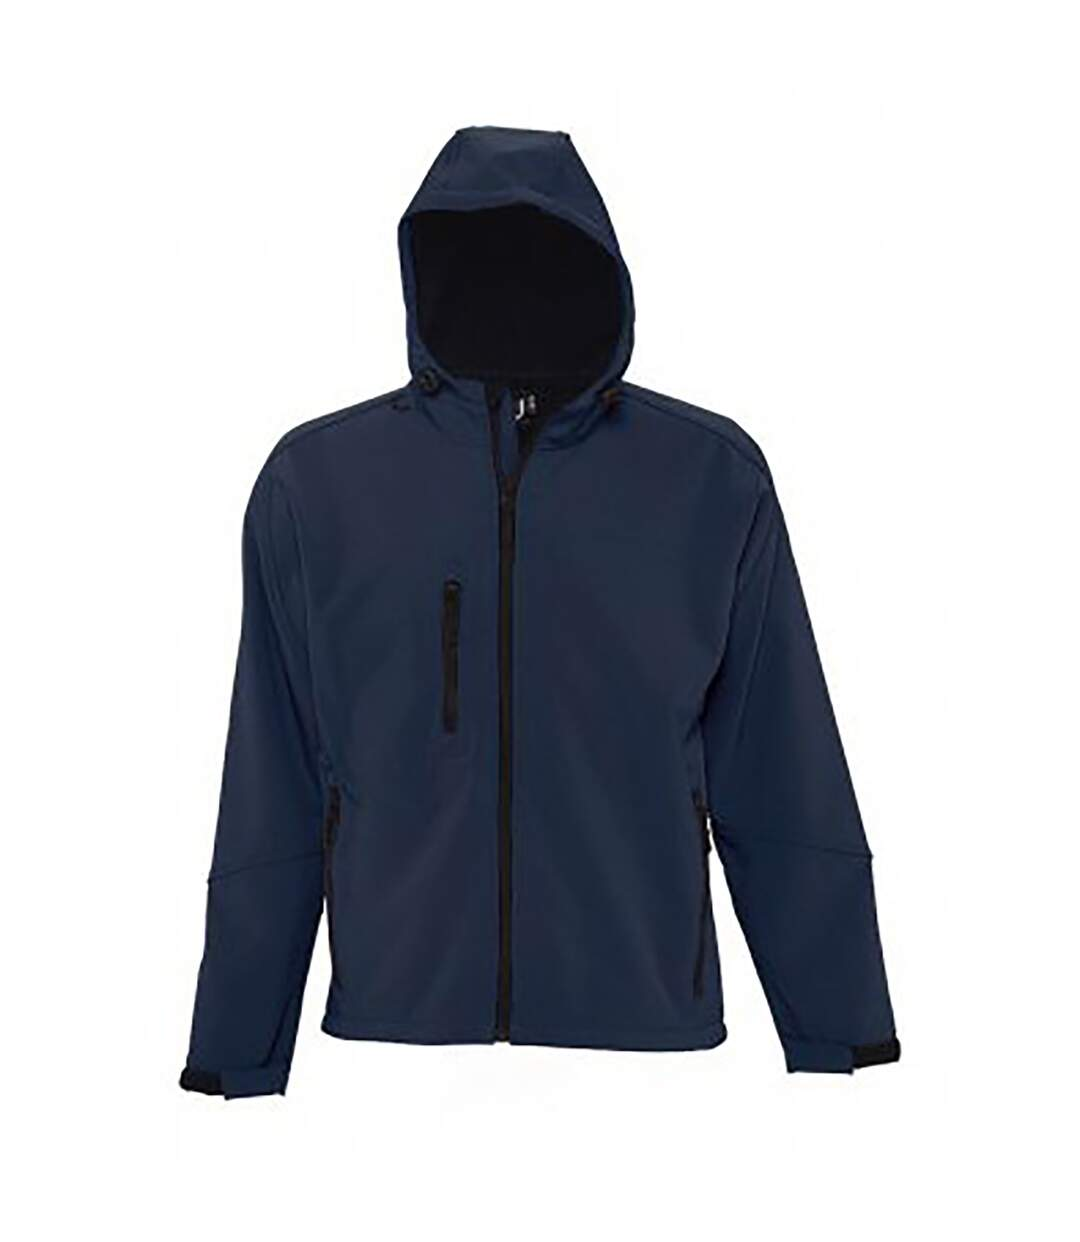 SOLS Mens Replay Hooded Soft Shell Jacket (Breathable, Windproof And Water Resistant) (Pepper Red) - UTPC410